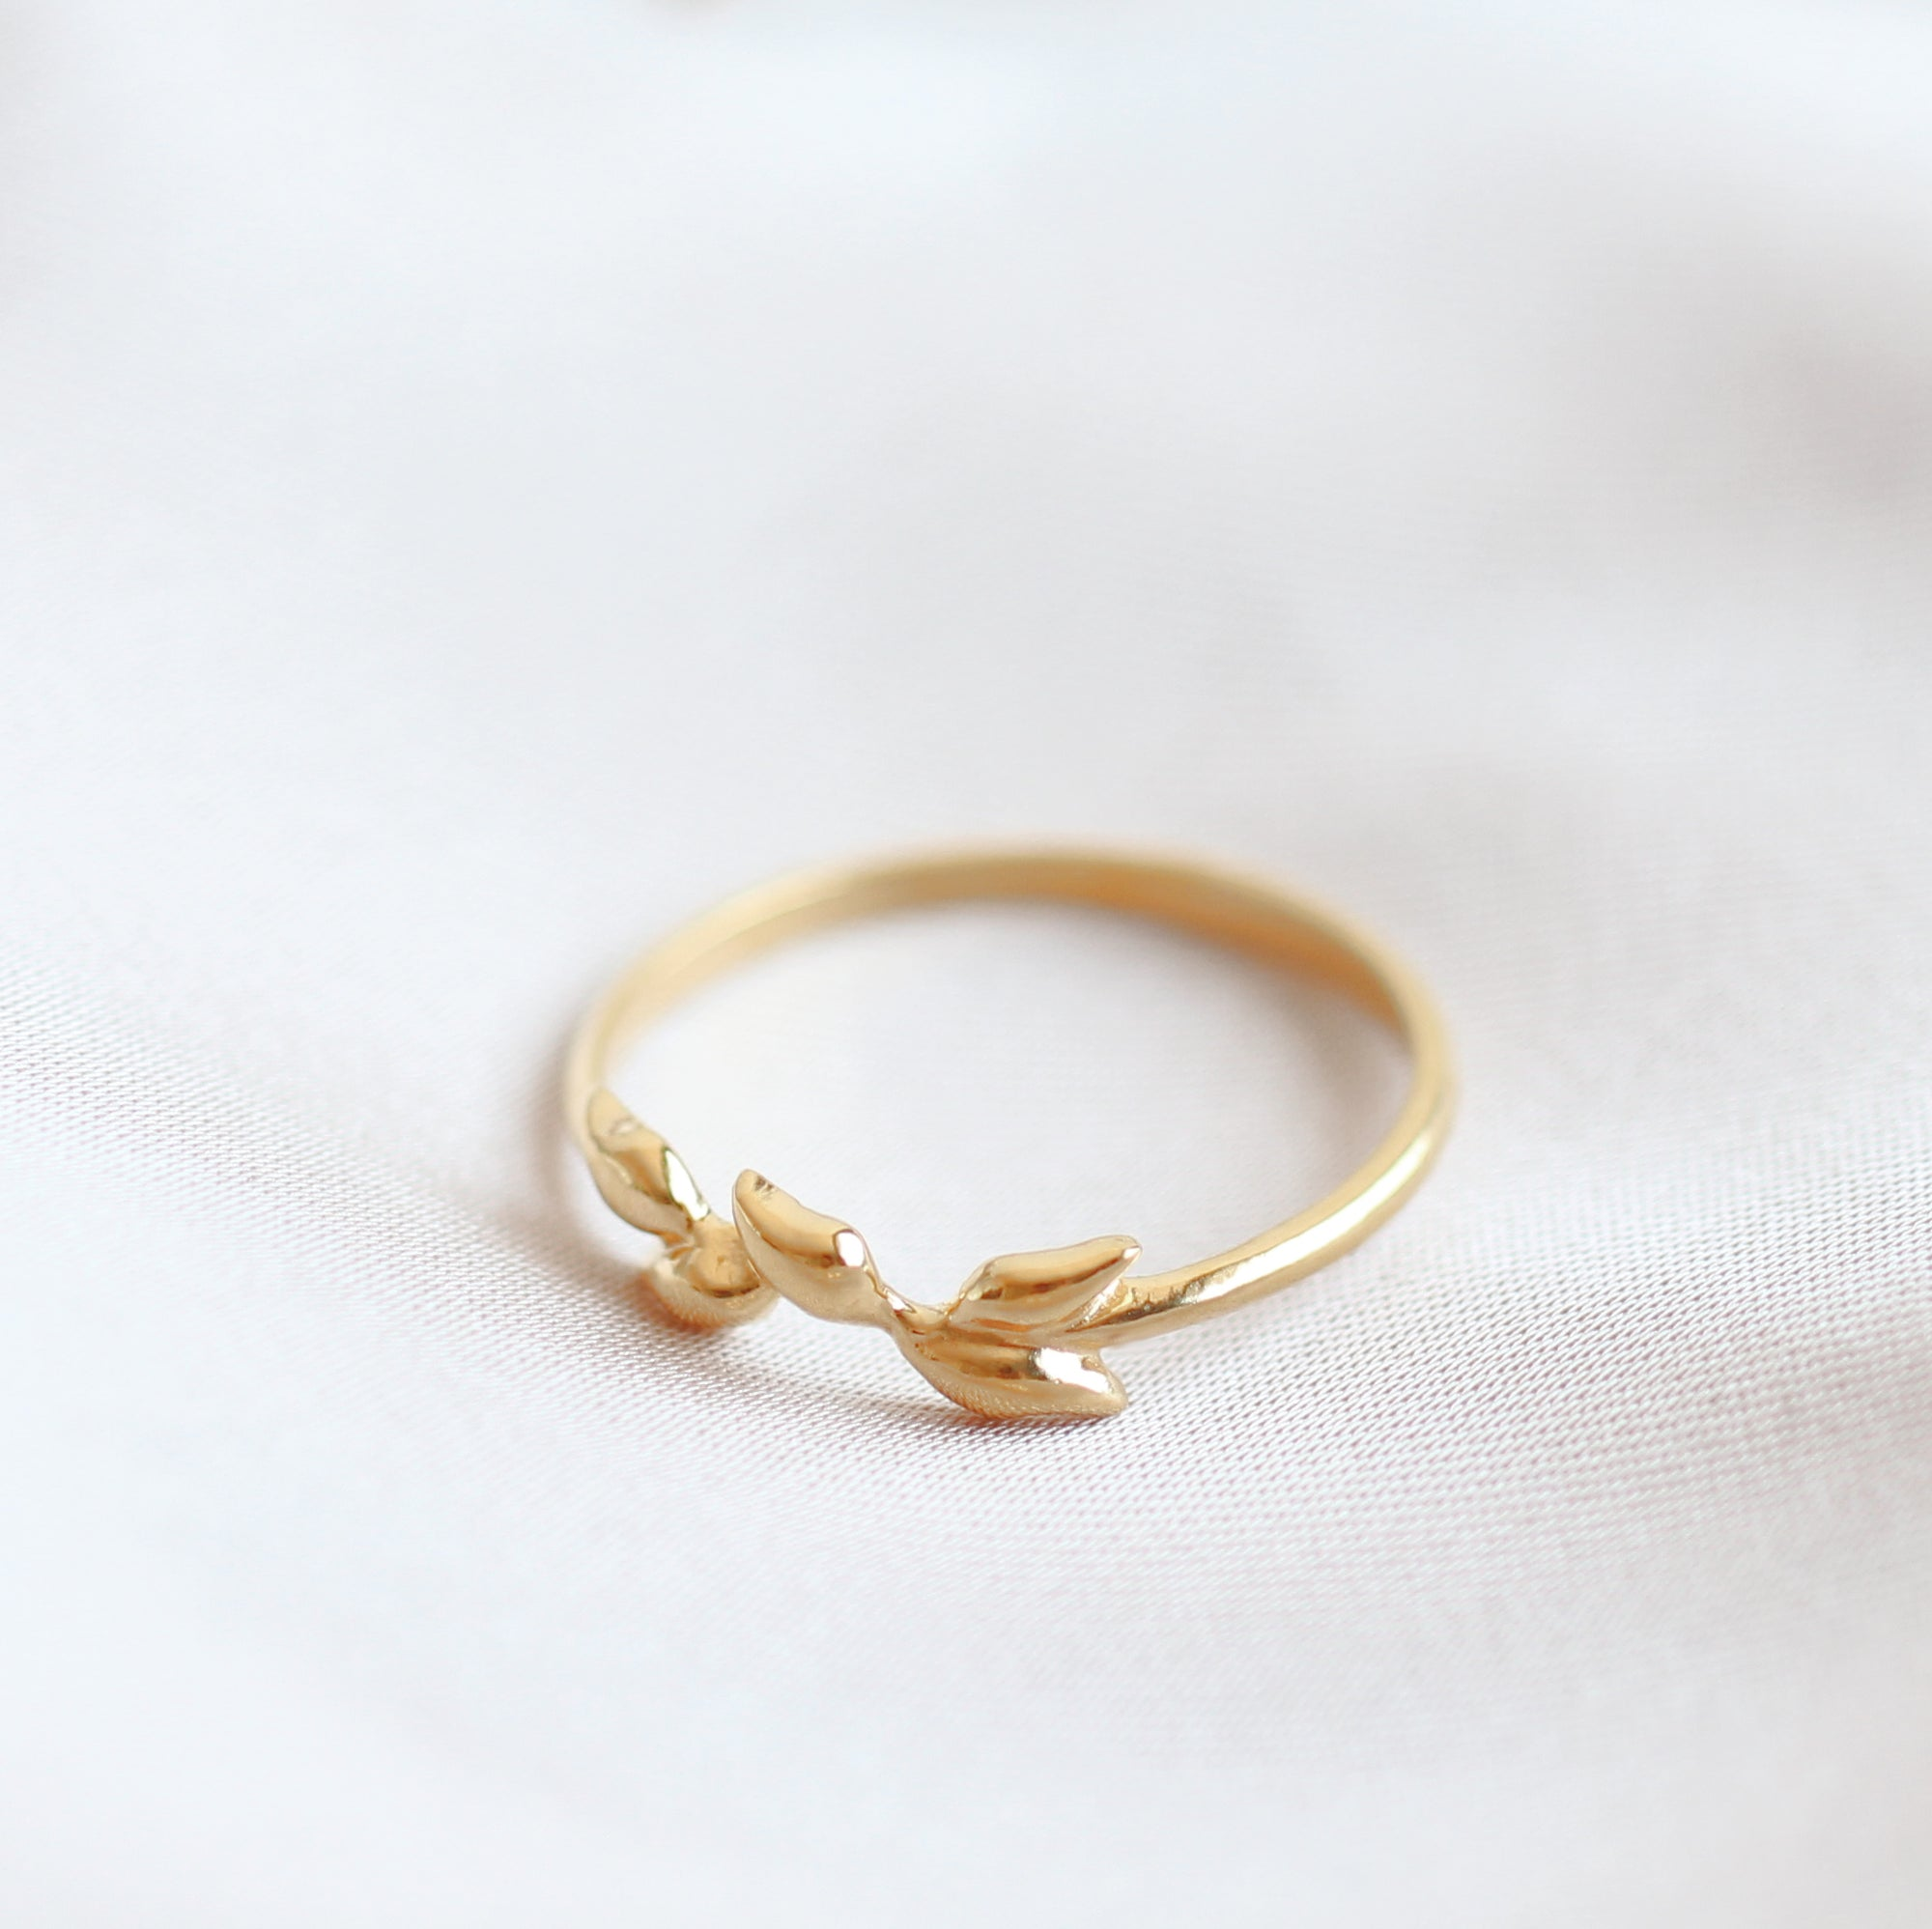 Artemis Ring in 14k gold